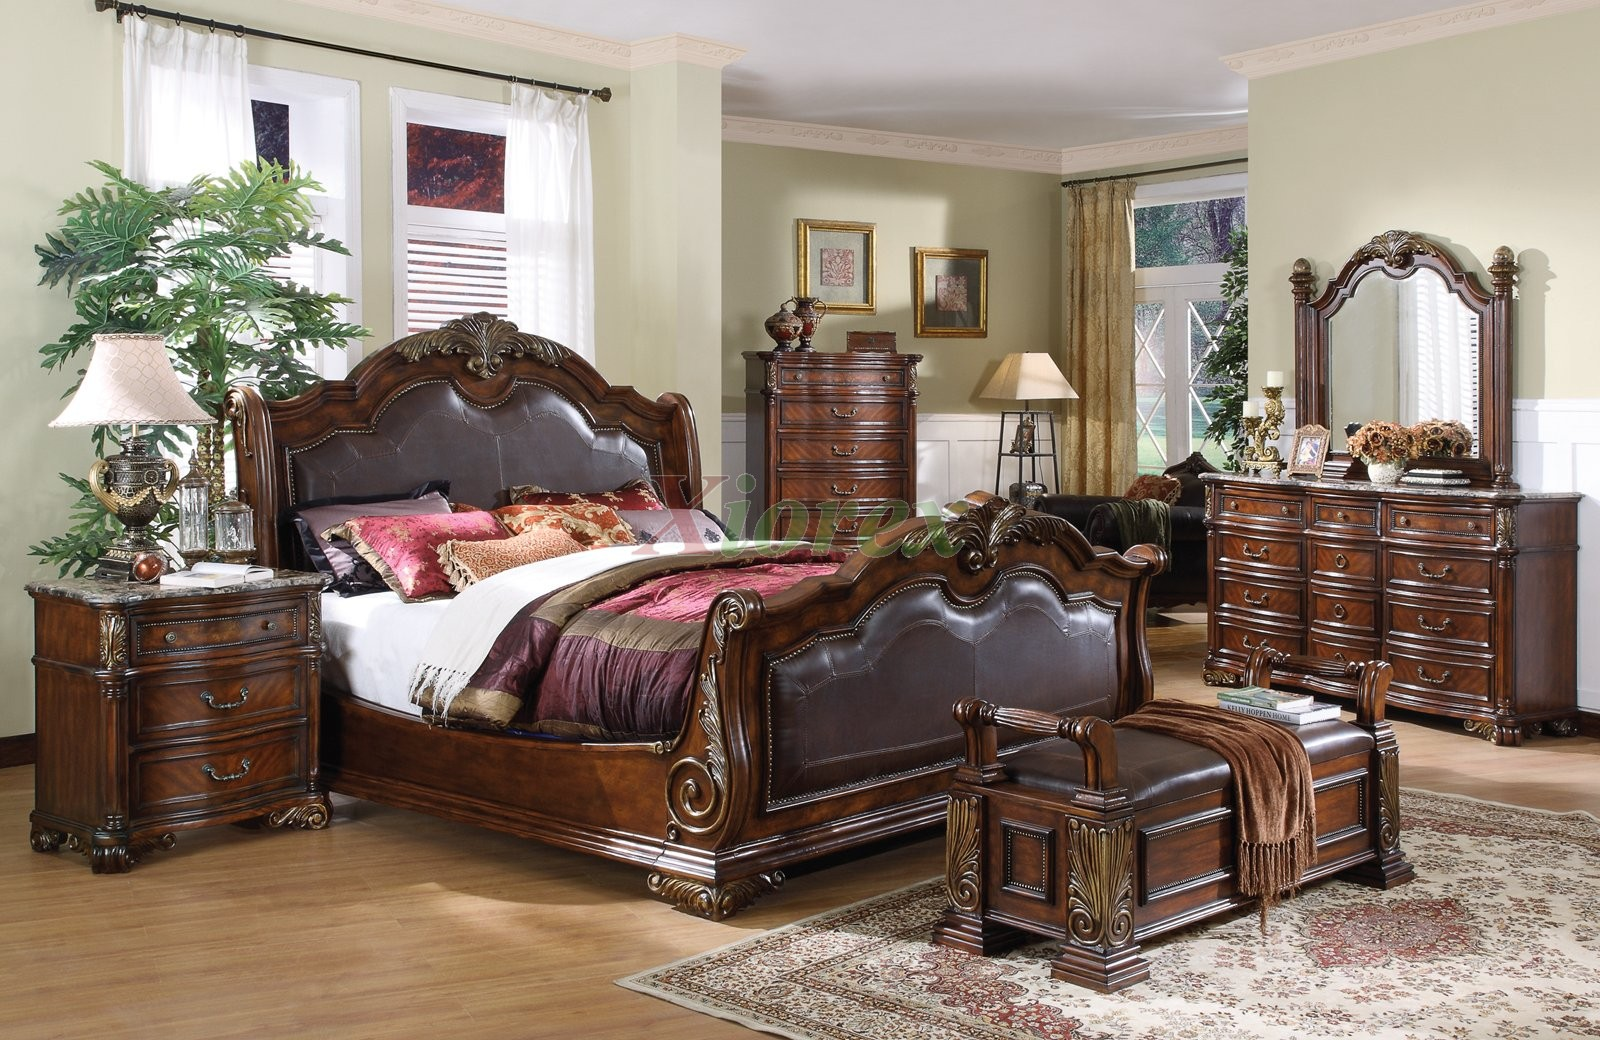 Bon Sleigh Bedroom Set With Leather Headboard And Leather Footboard Beds |  Xiorex.